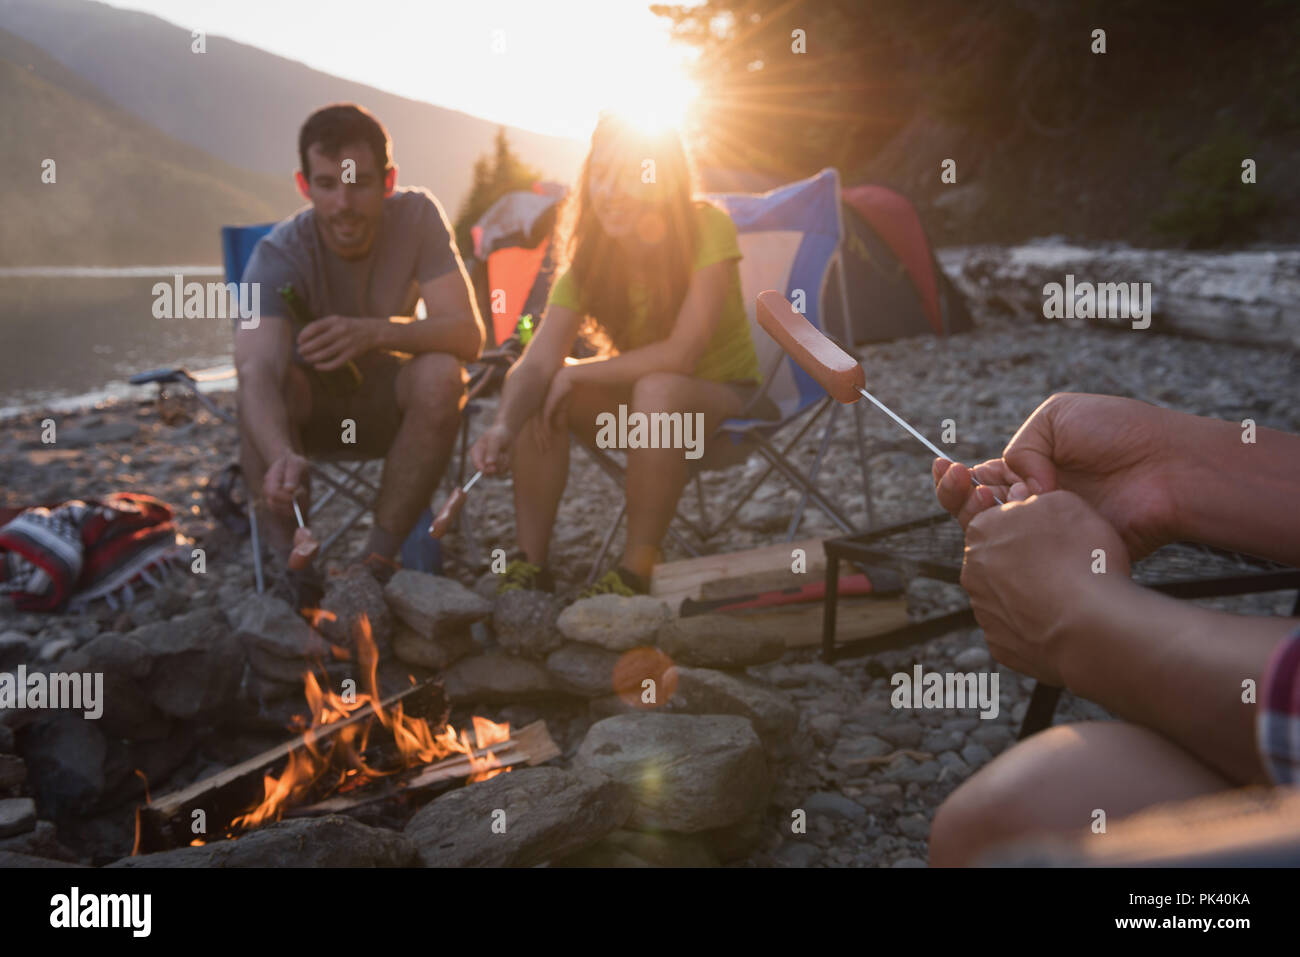 Group of friends heating hot dog near campfire - Stock Image